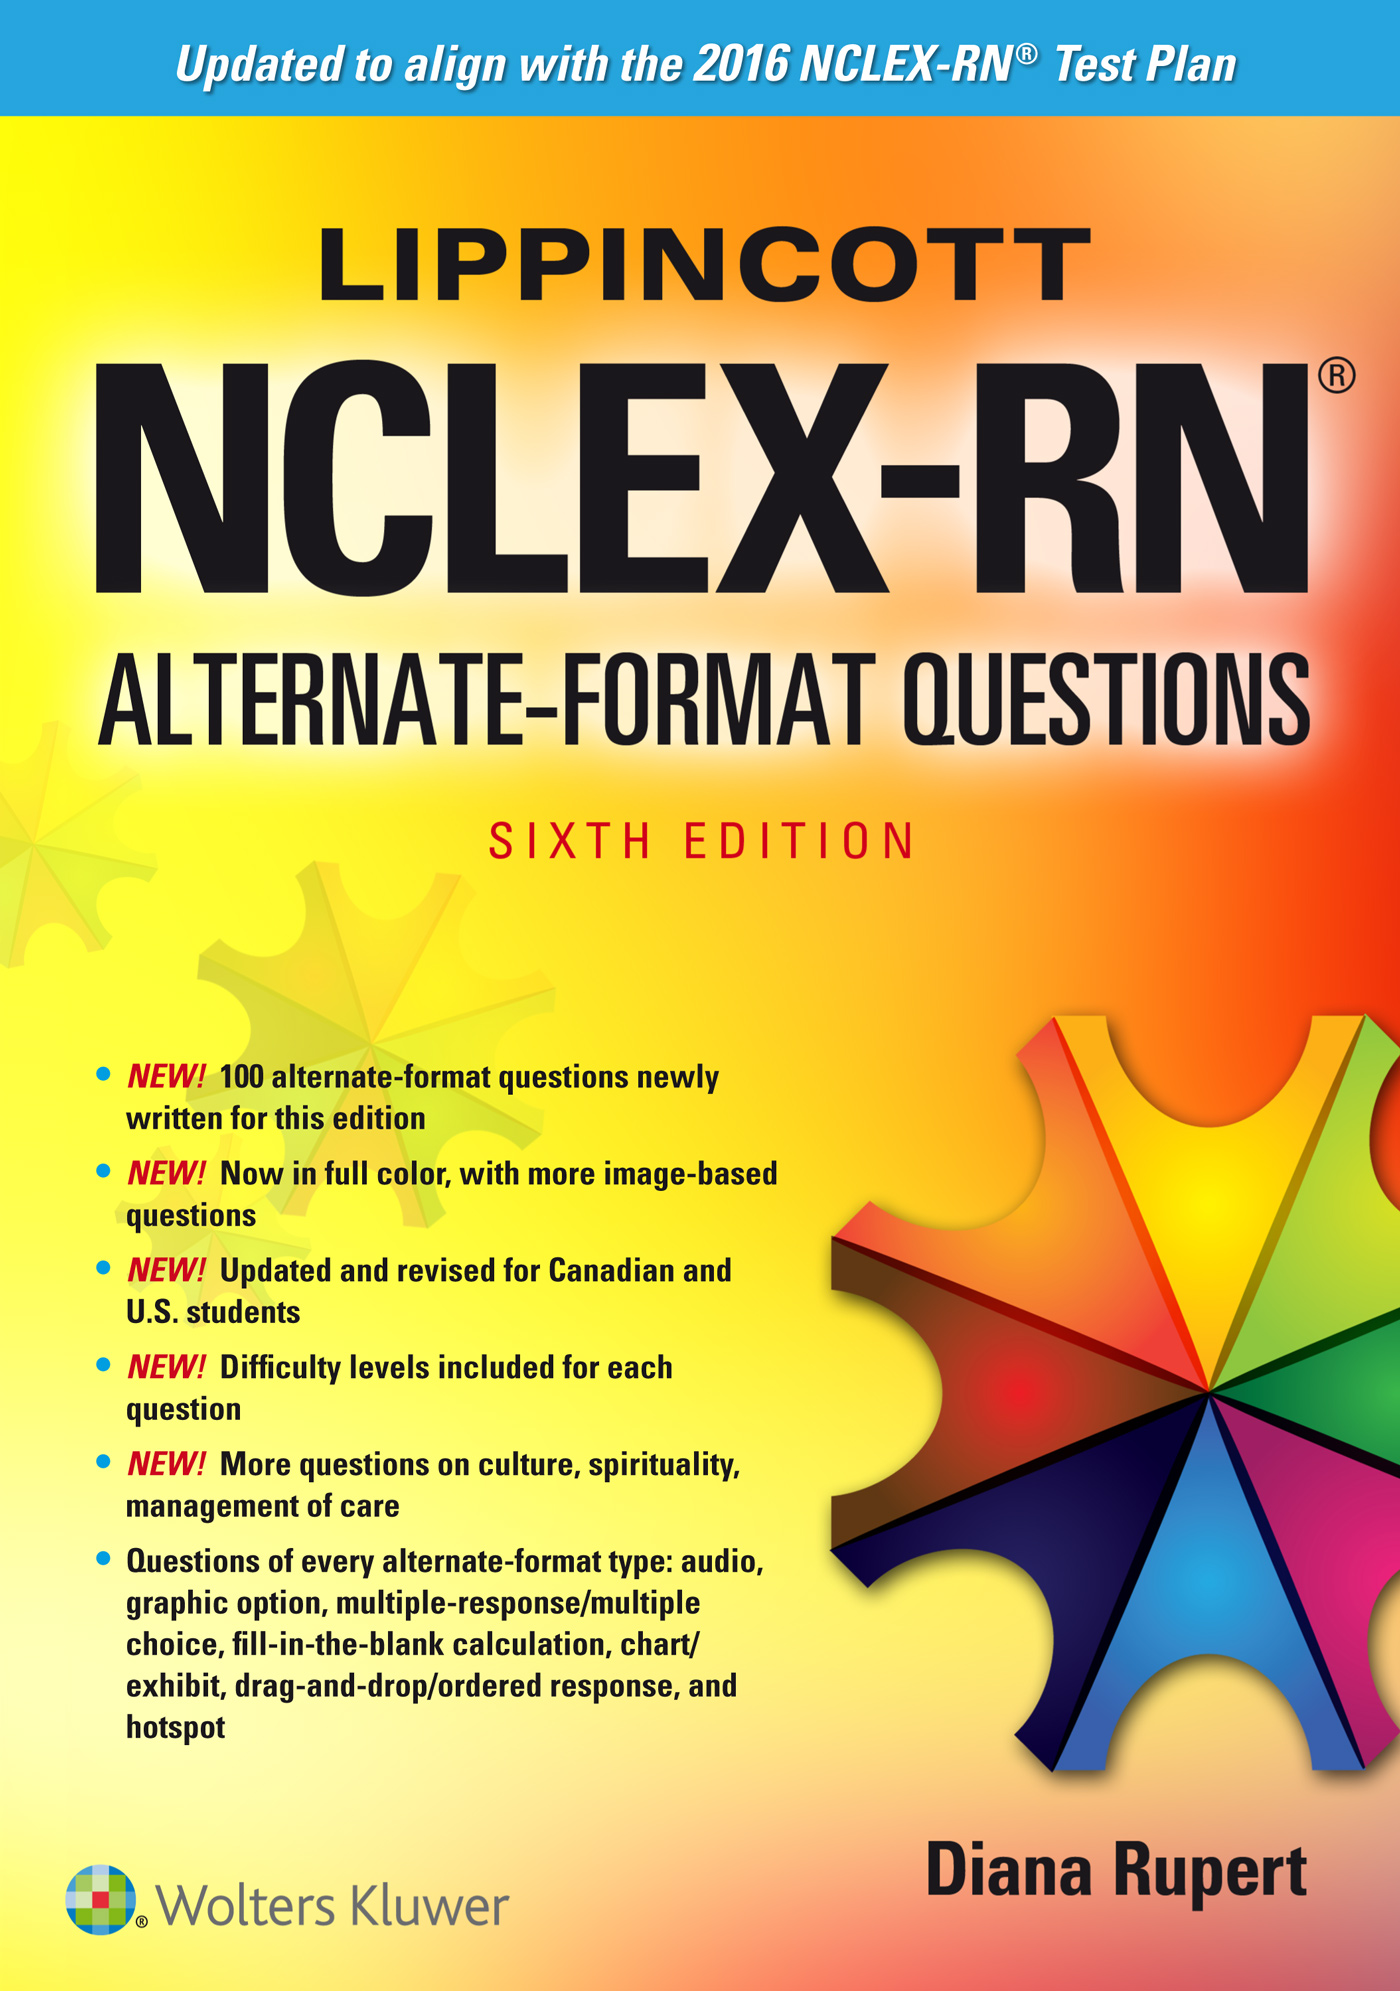 Nursing lww official store wolters kluwer wolters kluwer book lippincott nclex rn alternate format questions xflitez Choice Image